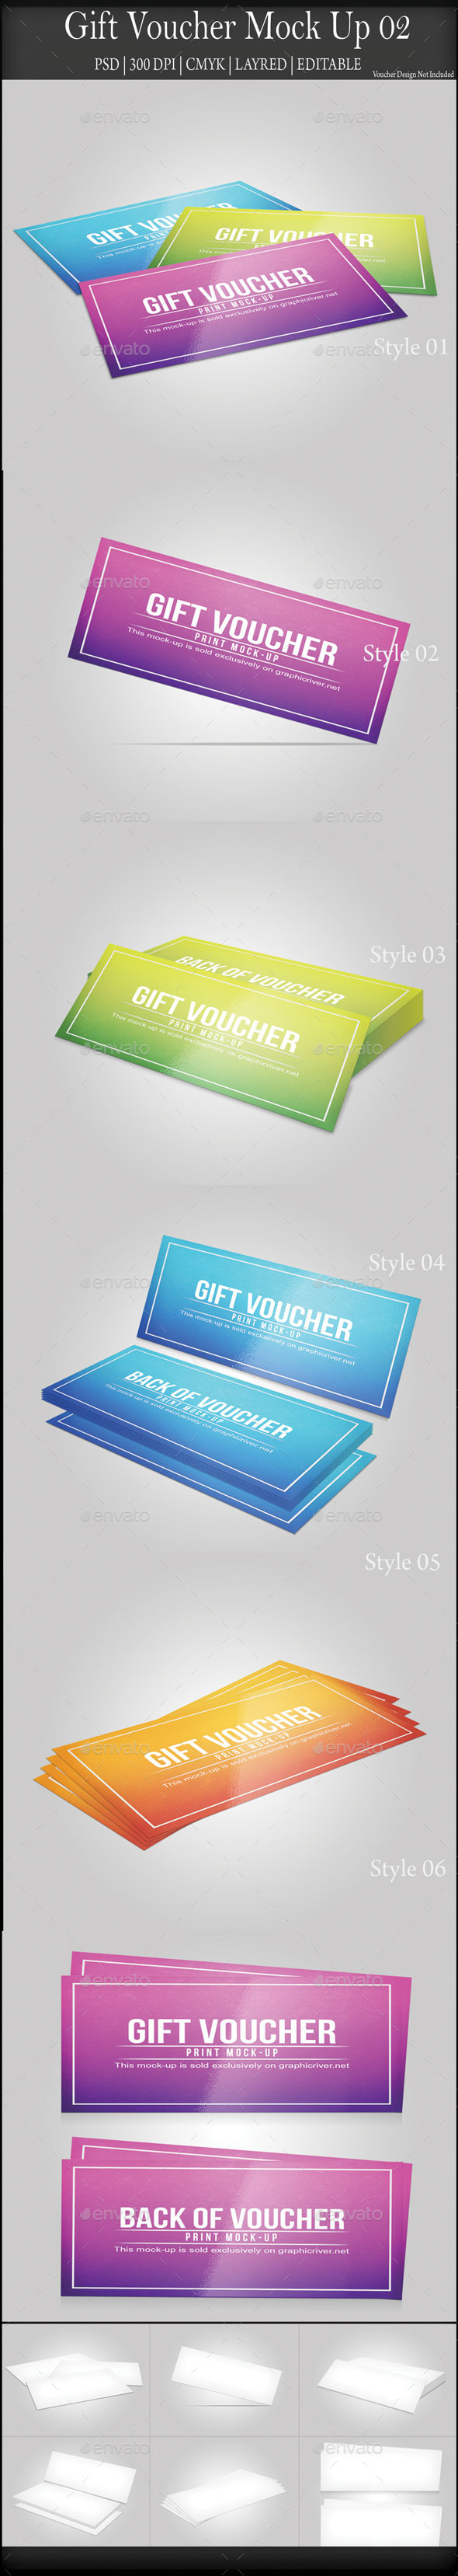 GraphicRiver Gift Voucher Mock Up 02 8828619